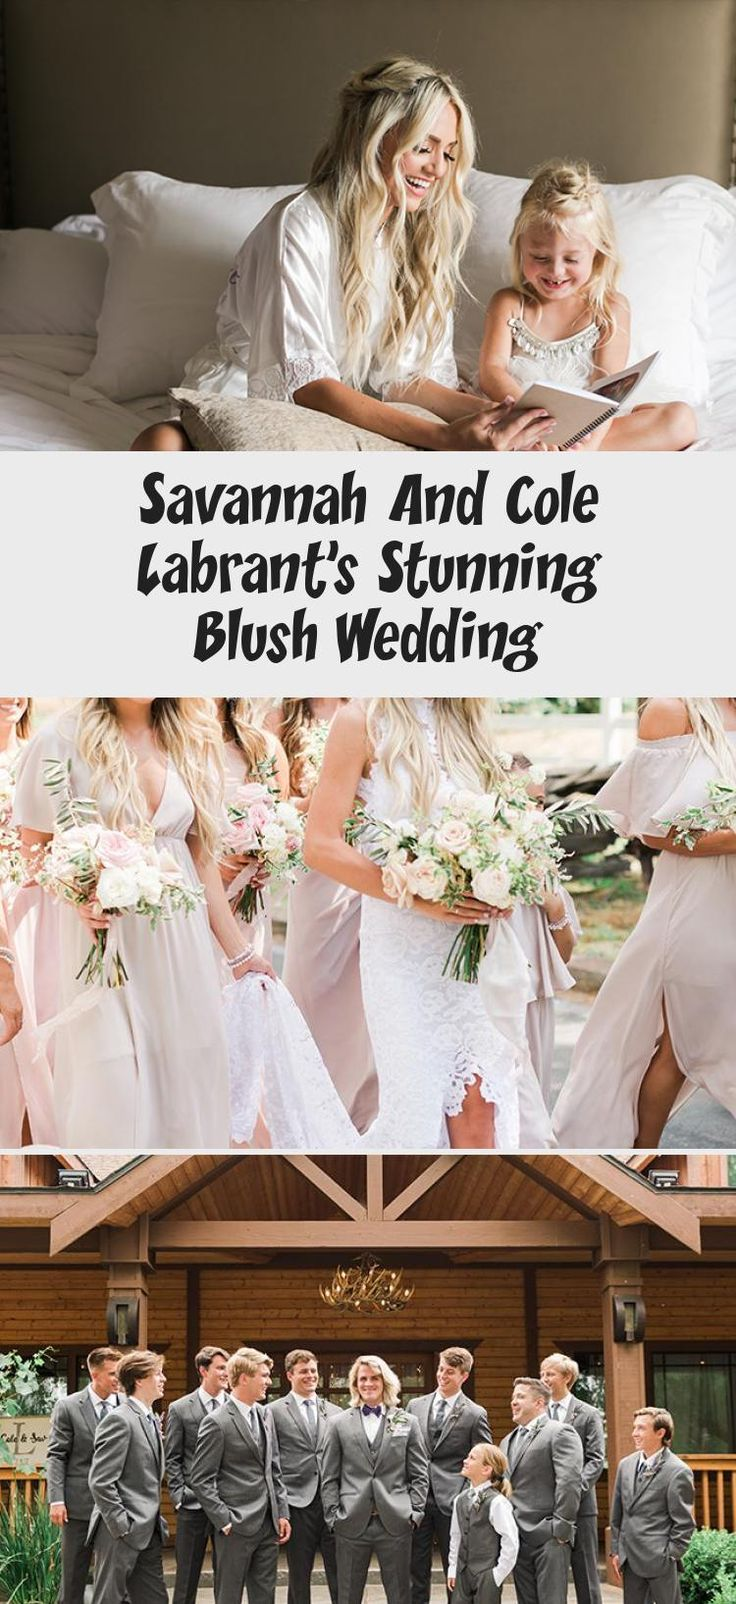 Savannah and Cole LaBrant's Stunning Blush Wedding - Inspired By This #BridesmaidDressesBlue #BridesmaidDressesLace #AfricanBridesmaidDresses #WhiteBridesmaidDresses #BridesmaidDressesTurquoise